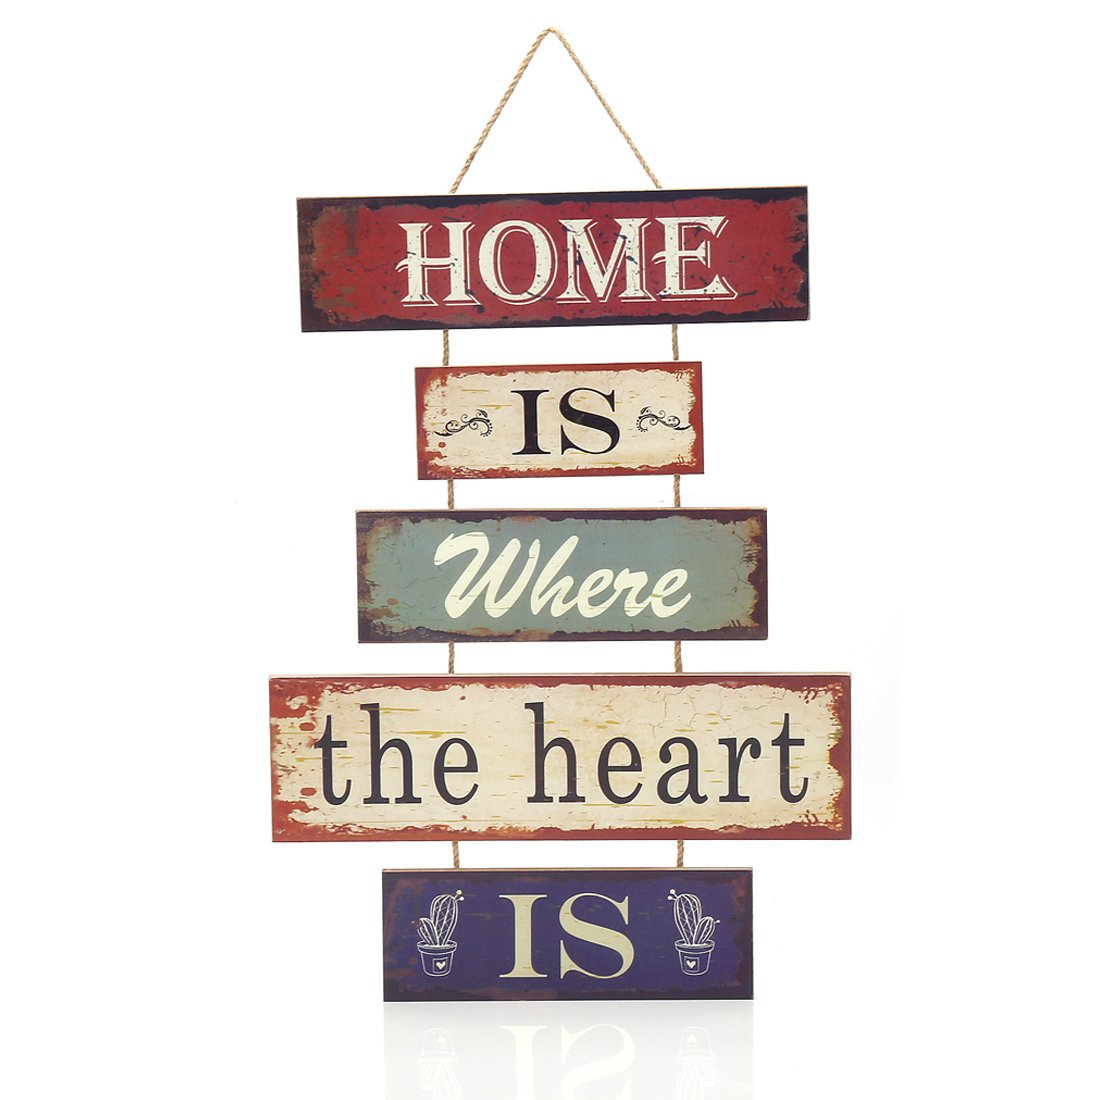 16.8''x12'' MDF Wood Fun Decorative 5-plate Welcome Hanging Plaque Sign (Home is Where the Heart Is)